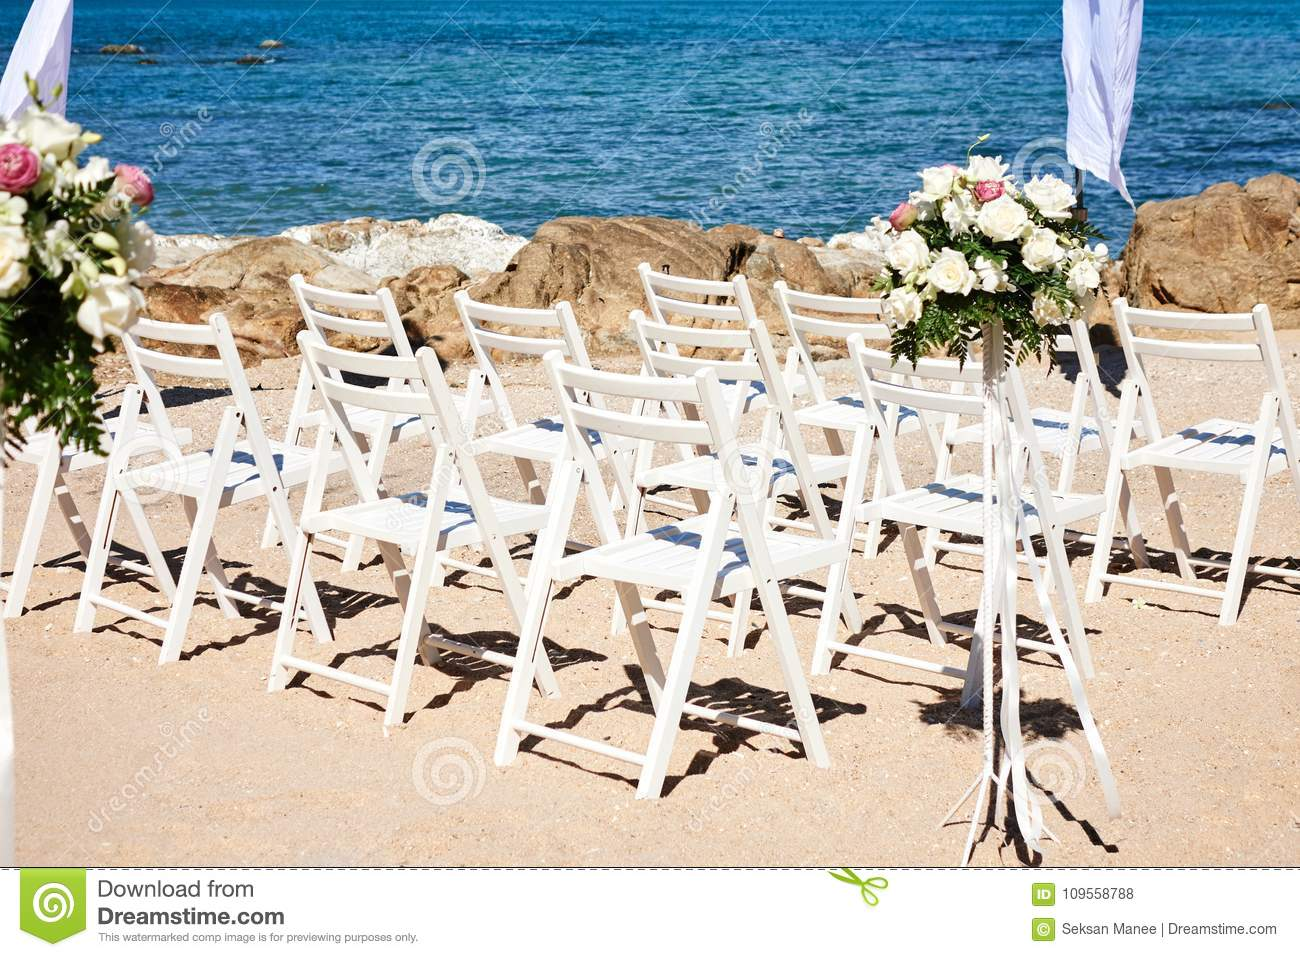 Remarkable Wedding Chairs White On The Sand Flowers Floral Decorated Download Free Architecture Designs Sospemadebymaigaardcom